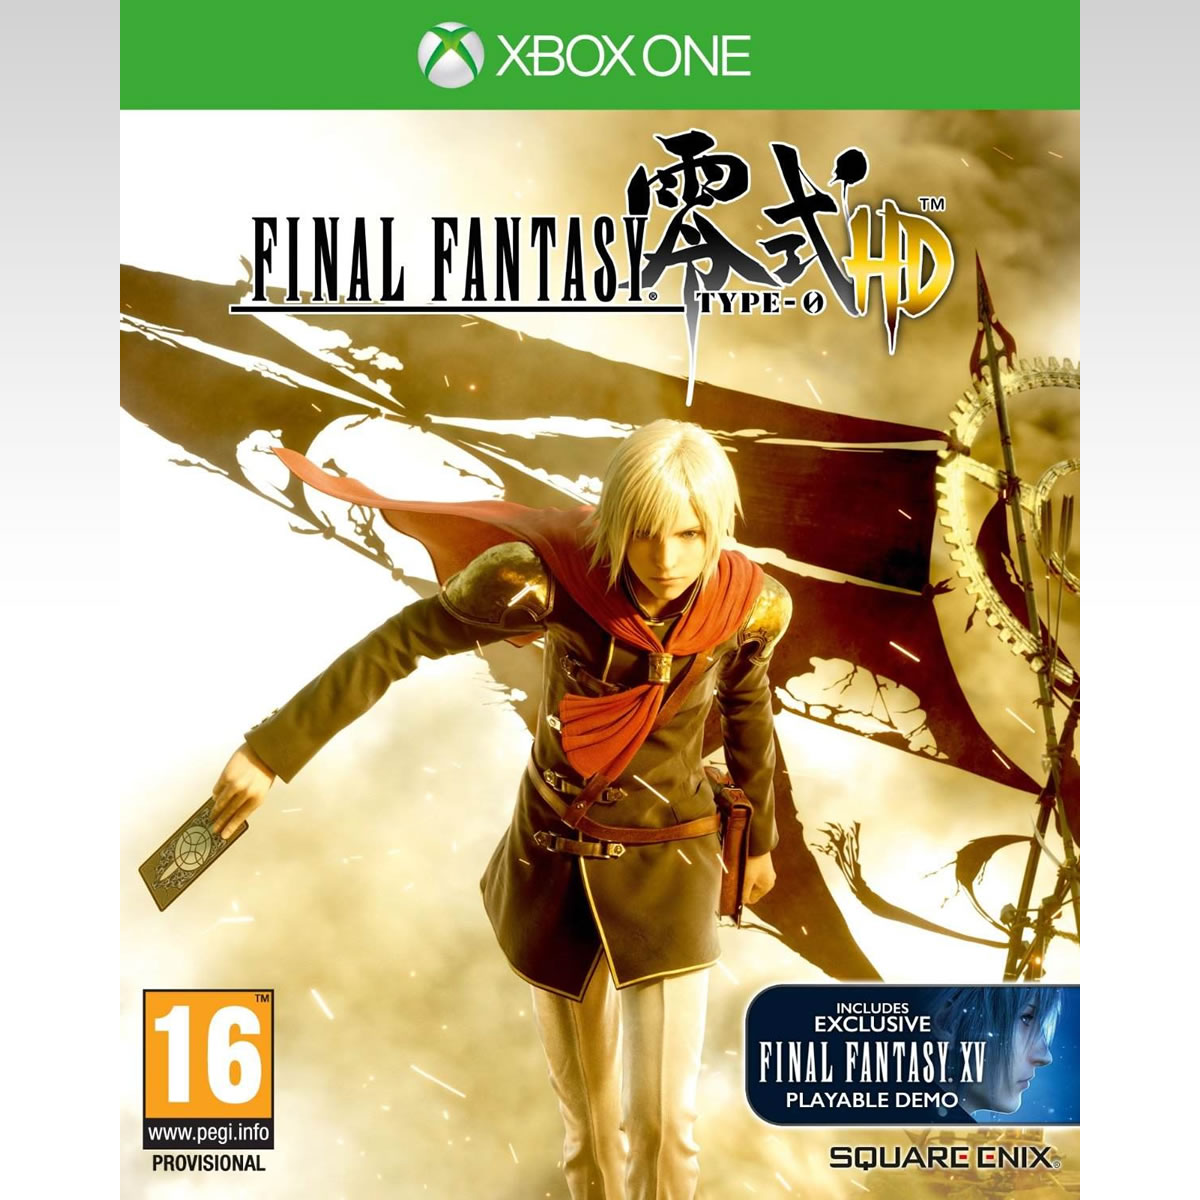 FINAL FANTASY TYPE 0 - HD (XBOX ONE)